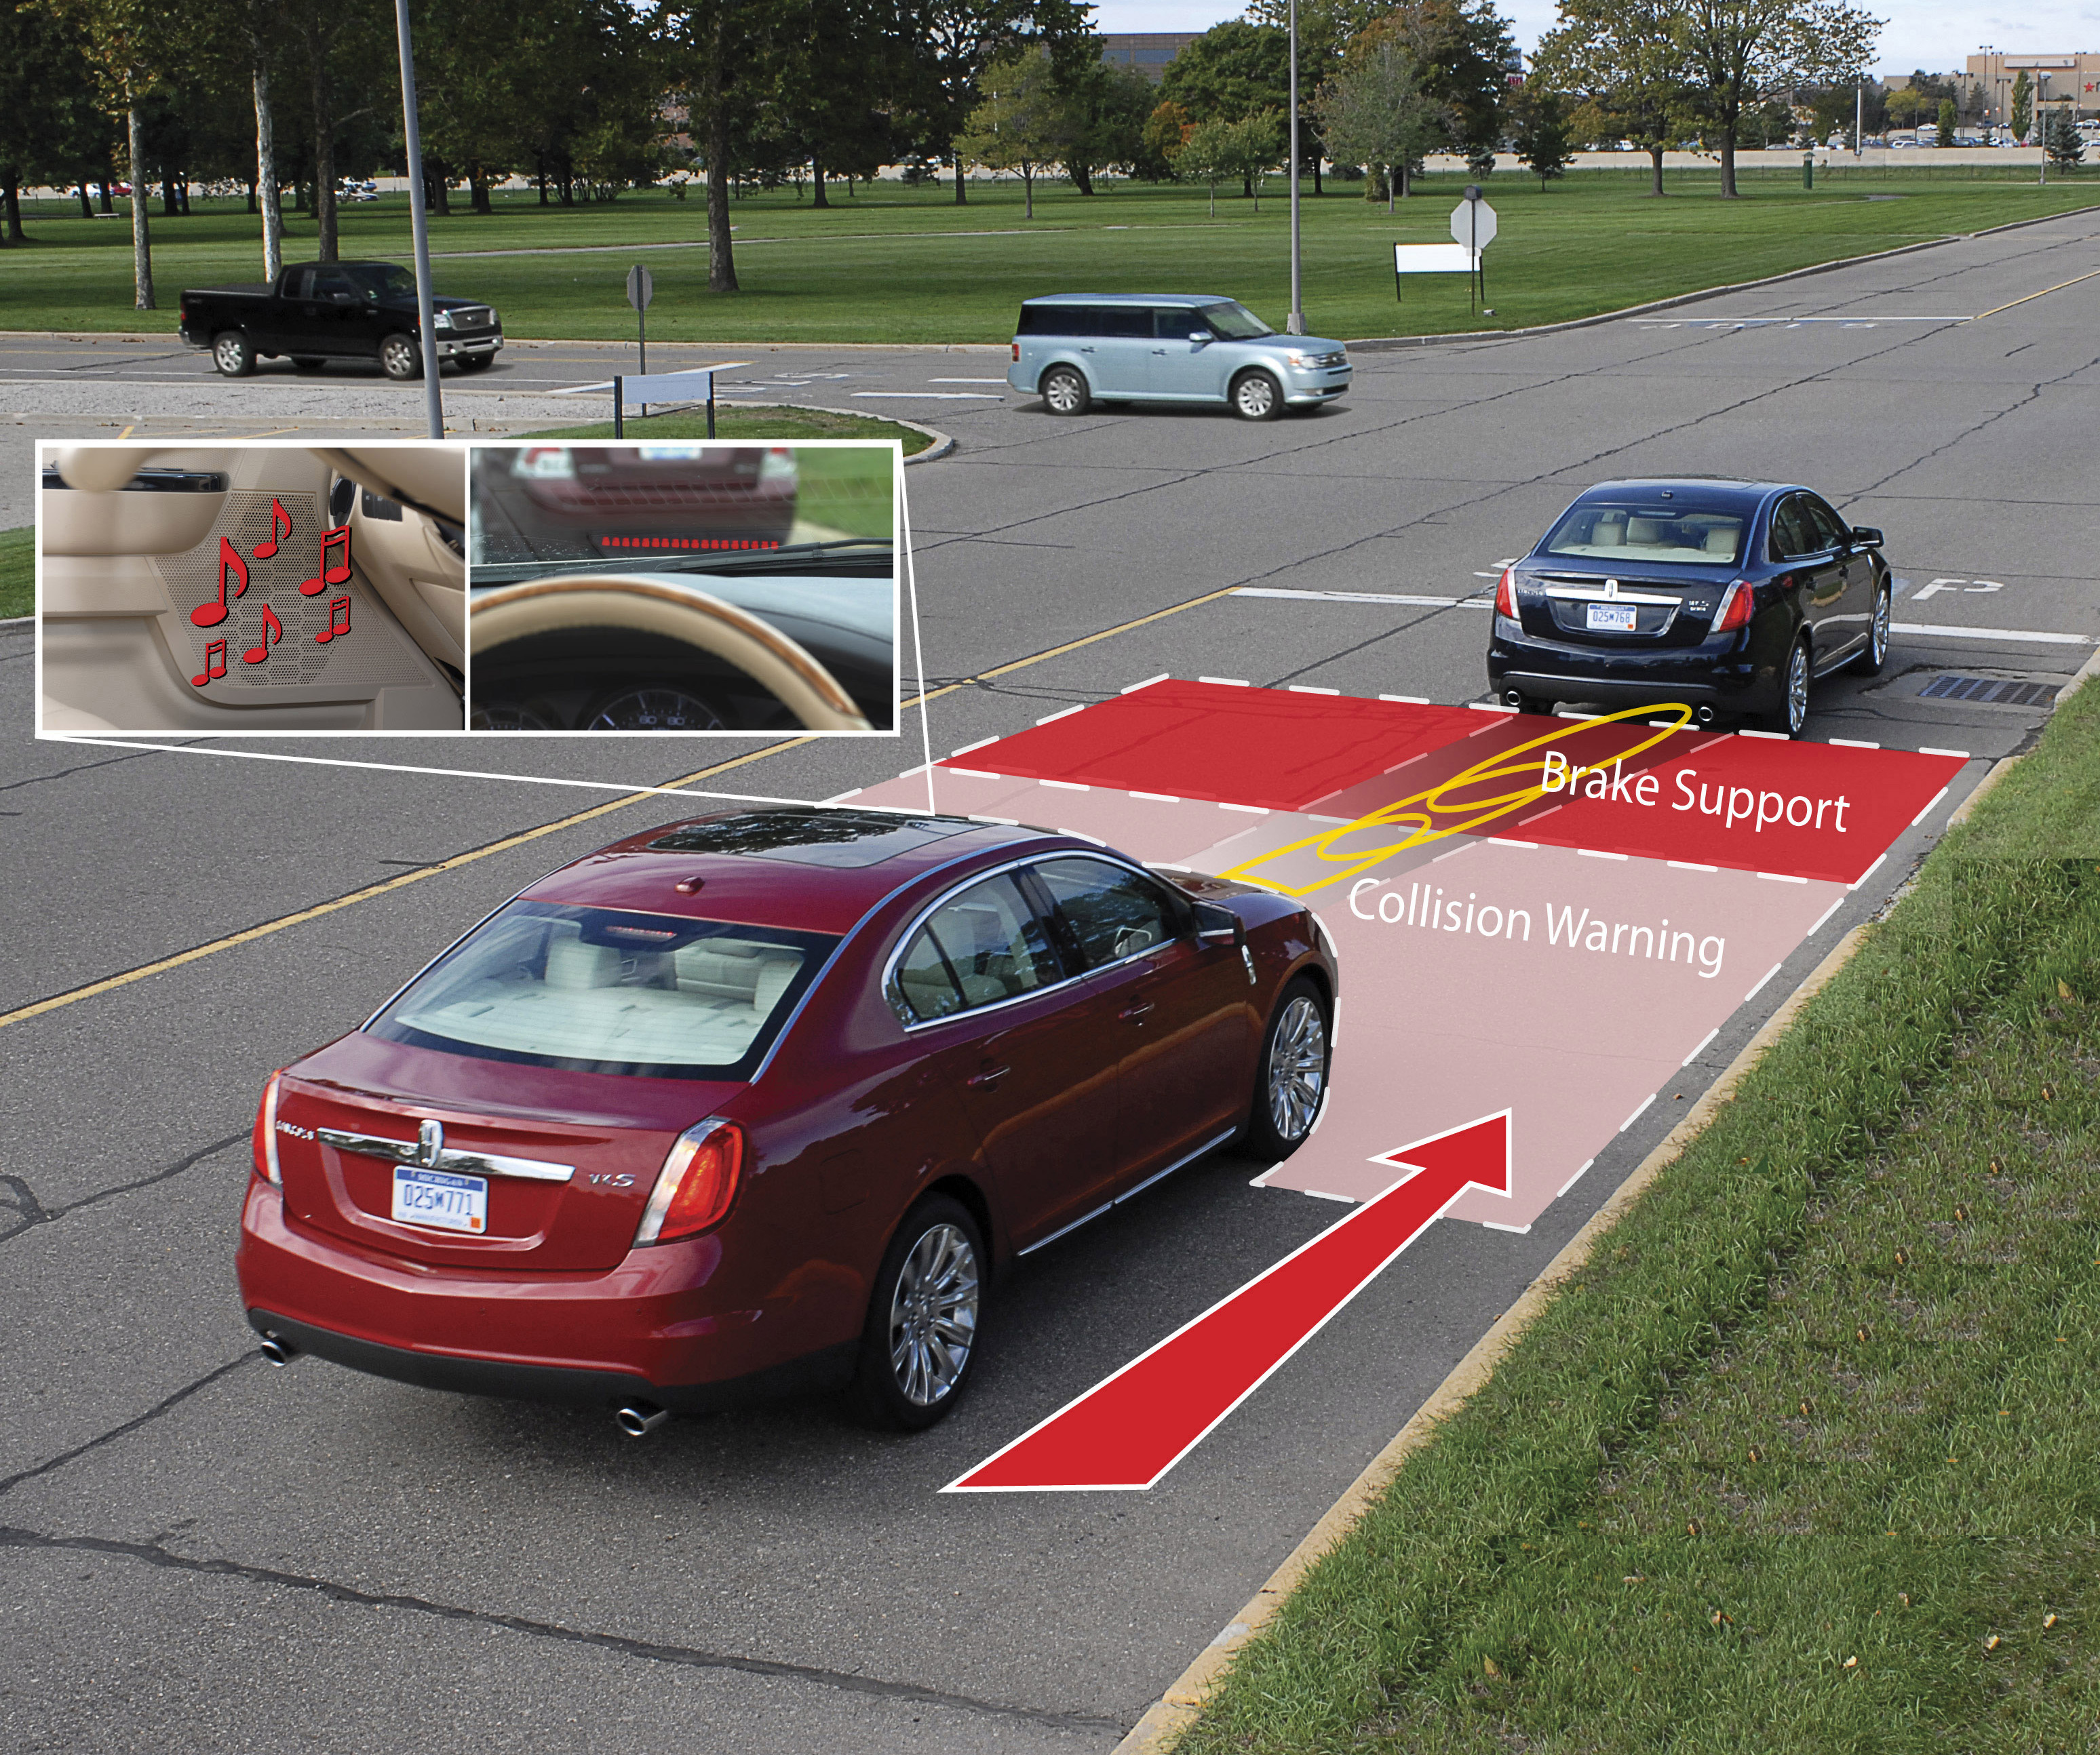 How Does Forward Collision Warning Keep Drivers Safe?